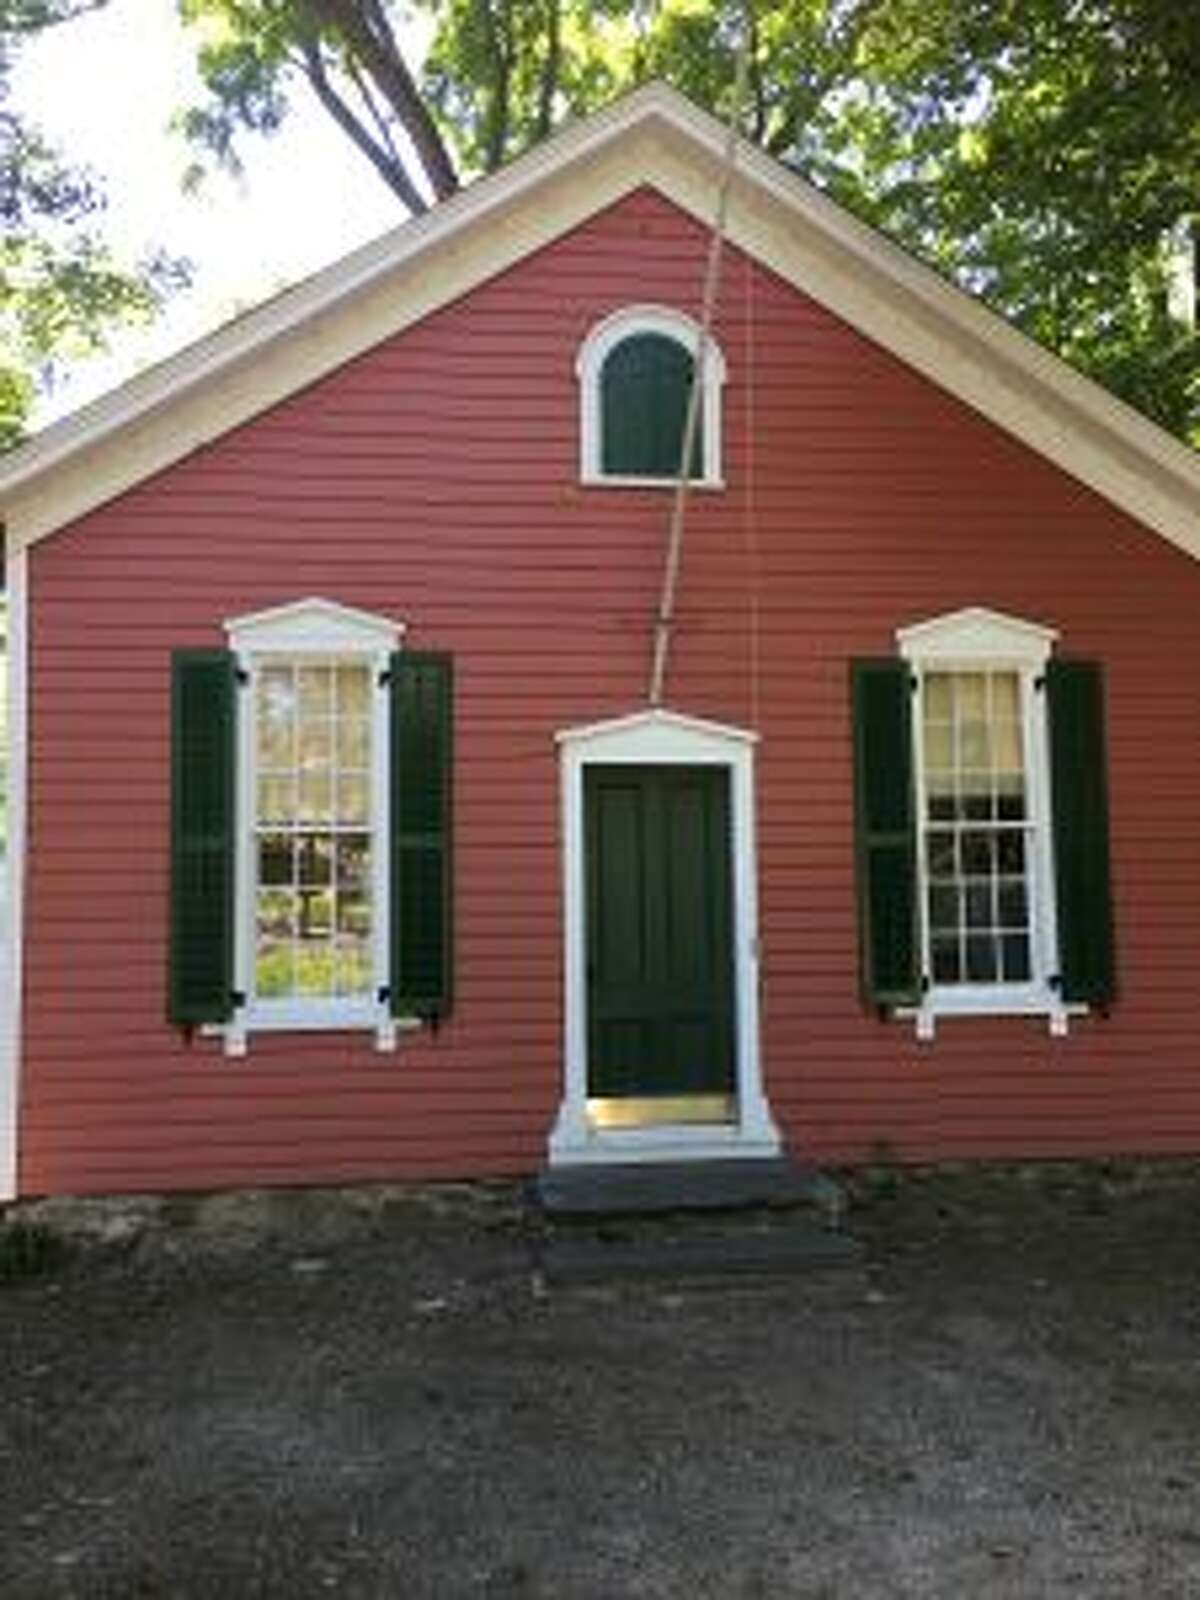 The Little Red Schoolhouse on Carter Street in New Canaan is going to open for tours. Little Red Schoolhouse